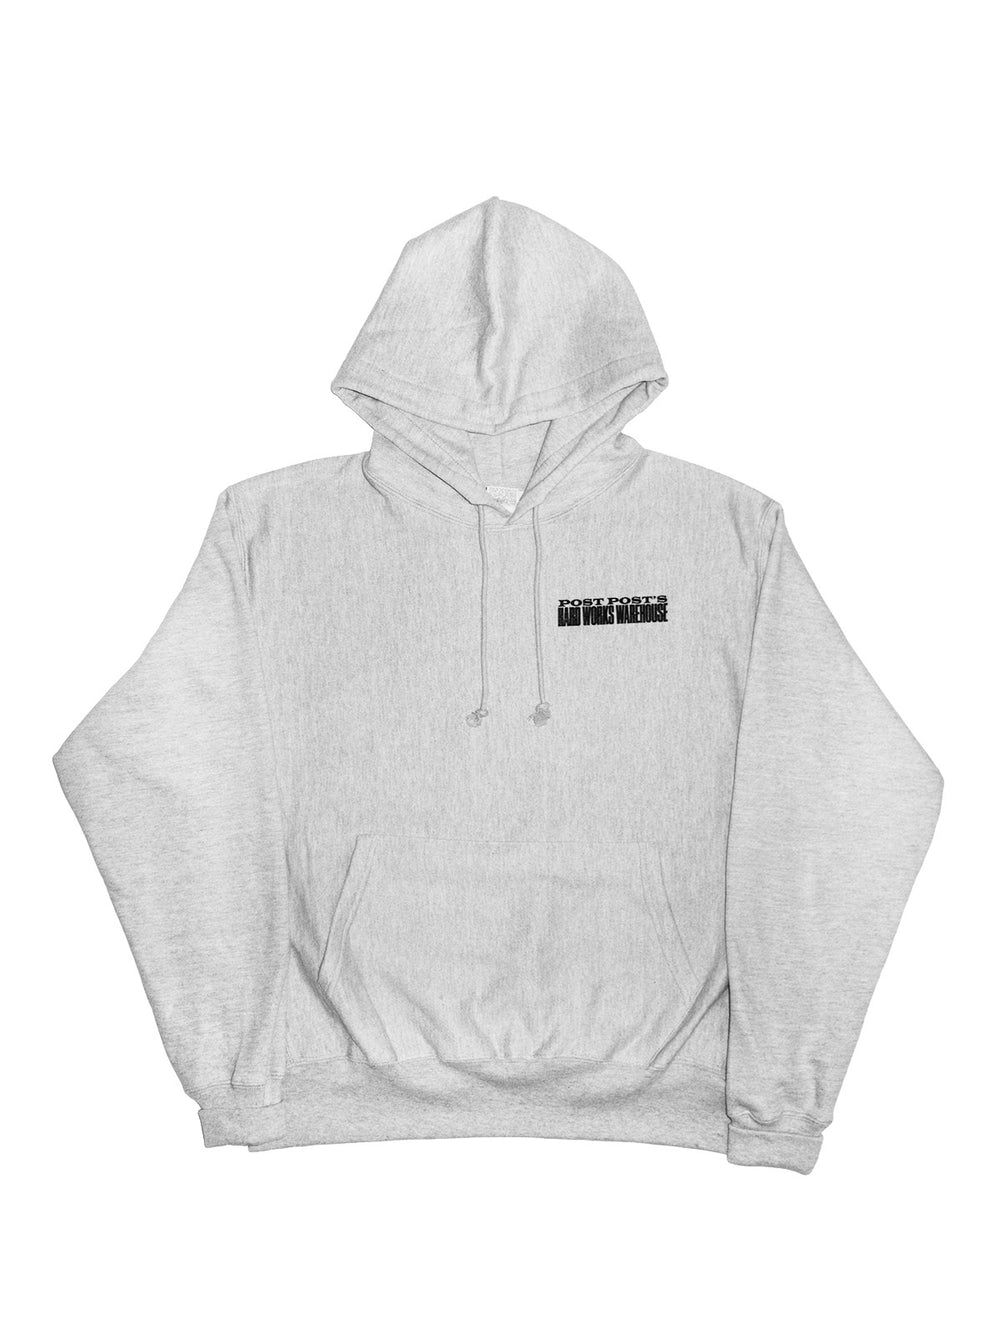 Hard Works Warehouse Reverse Weave Hoodie, Oxford Gray